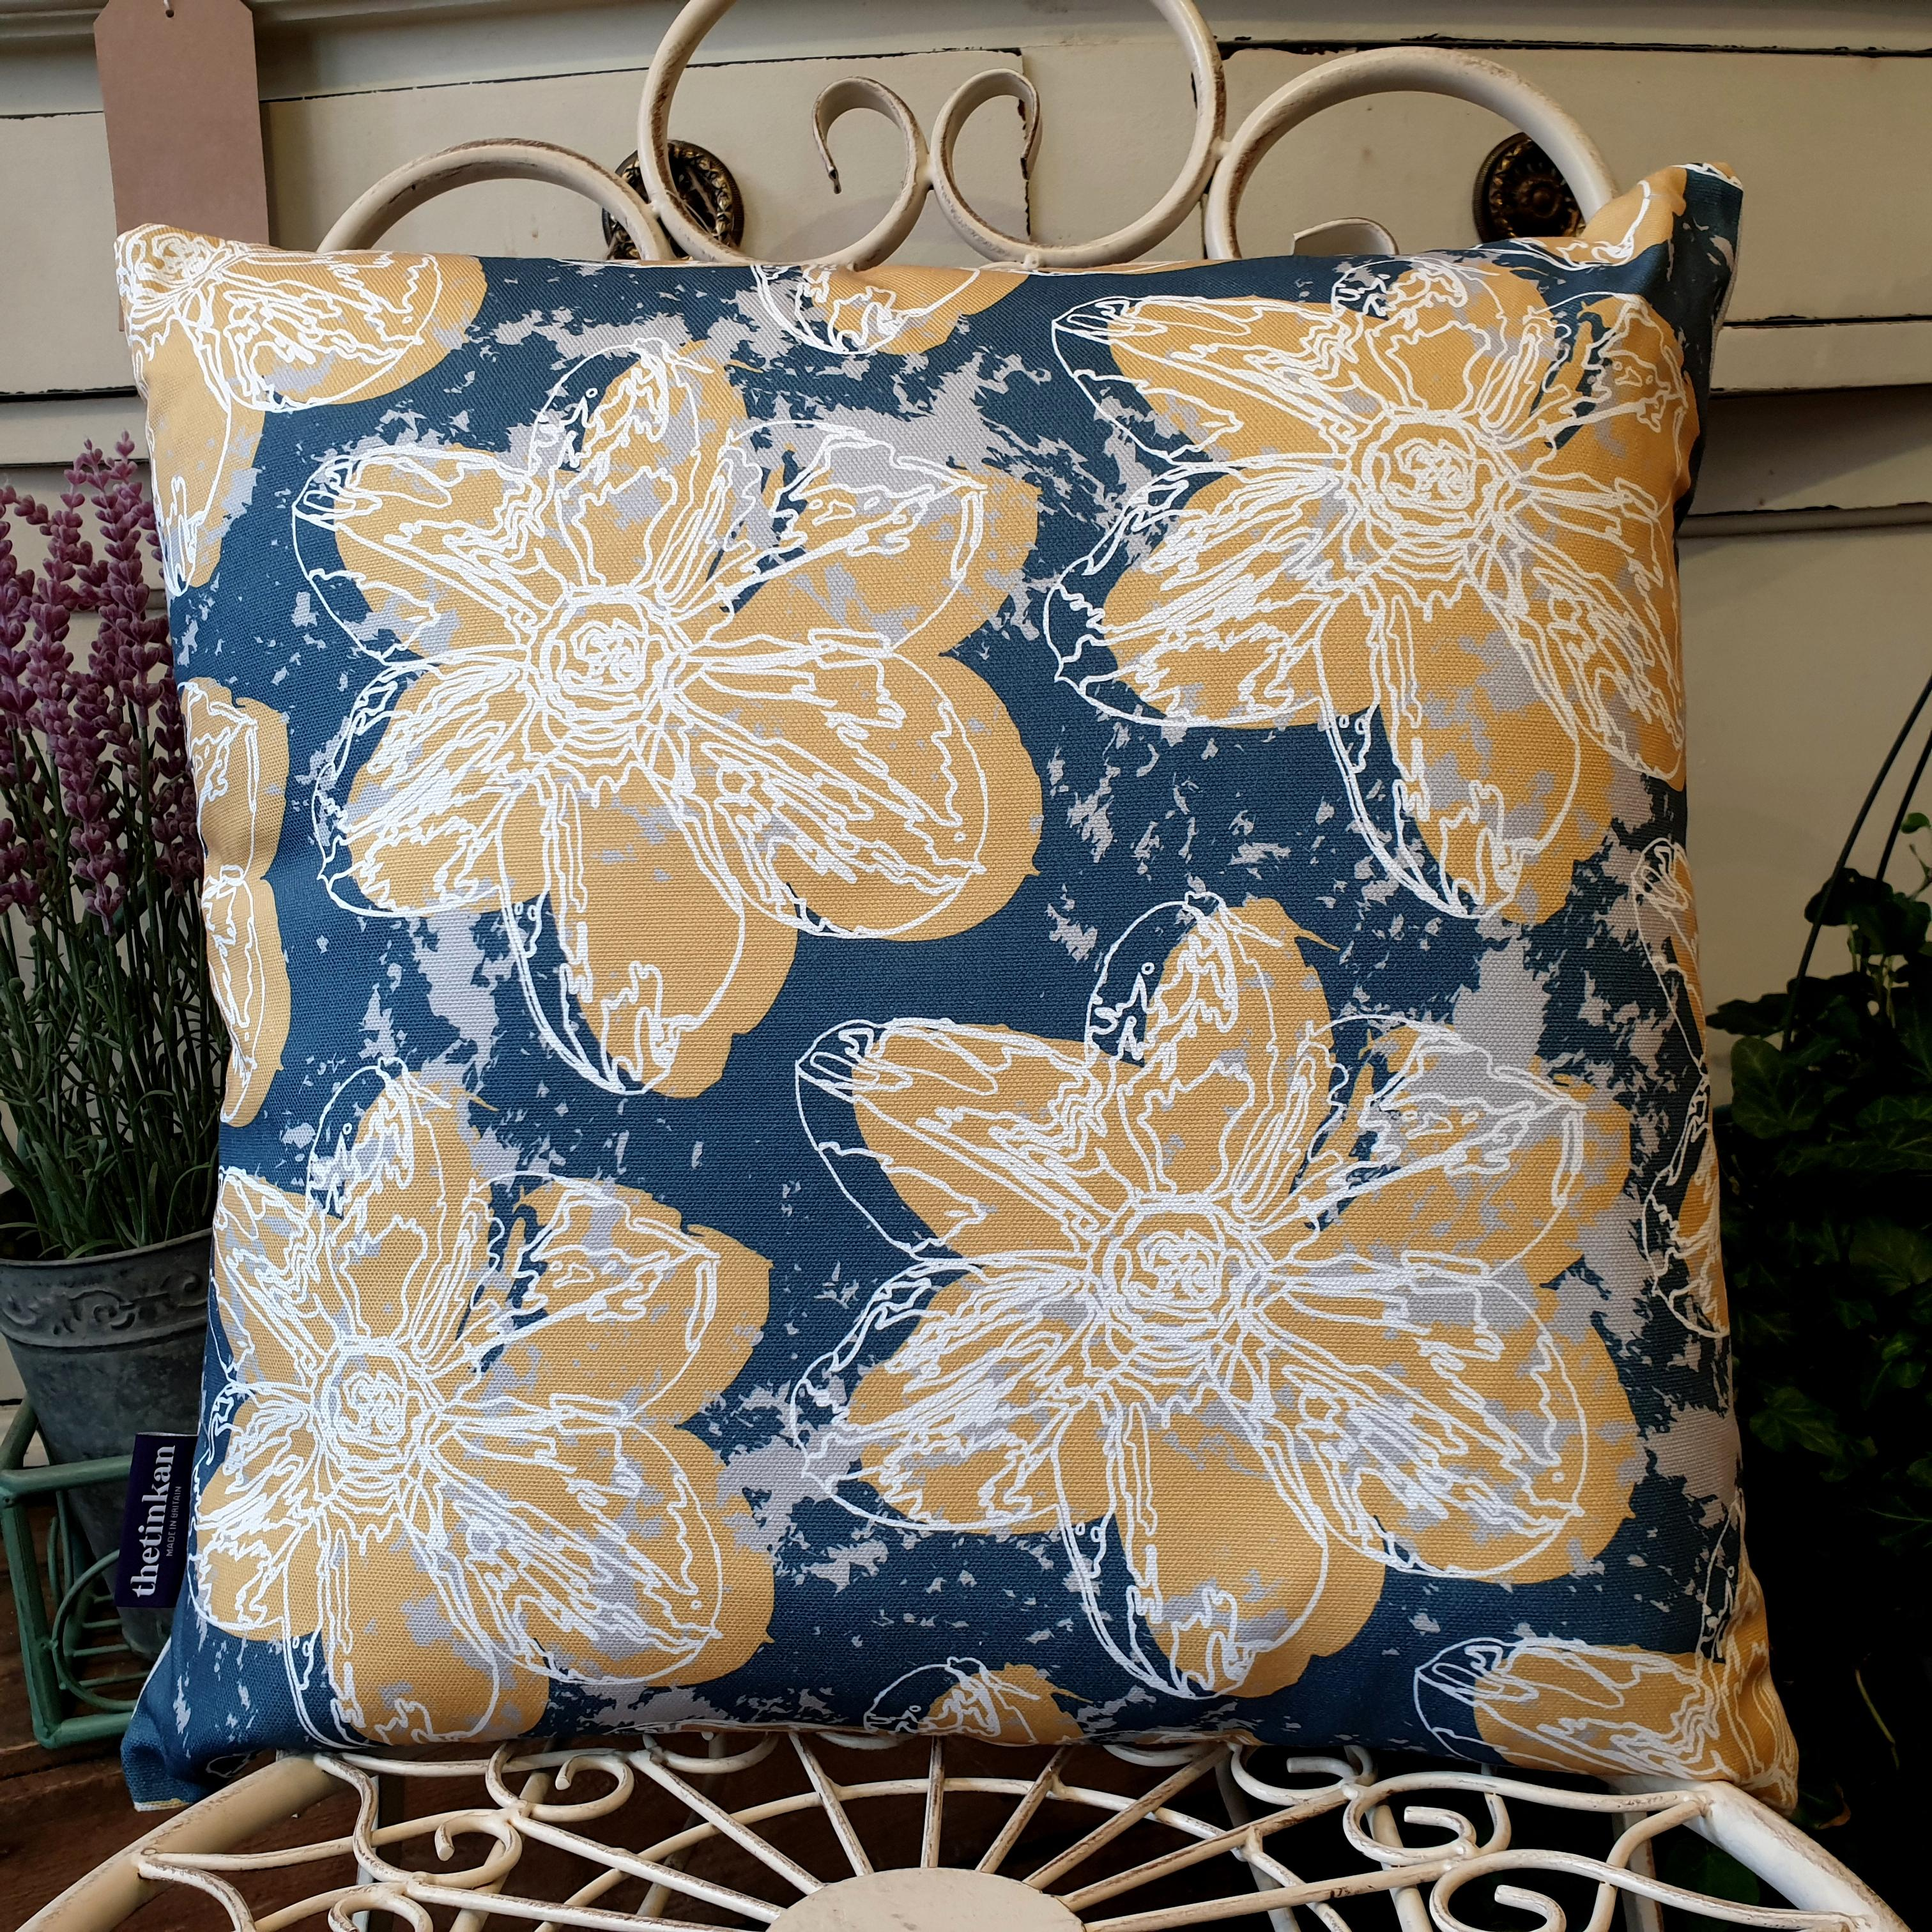 Double-sided 45cm square Flower Splash cushion designed by thetinkan. Mustard yellow narcissus flower with white traced outline set within an oxford blue background with pale grey paint splashes. Available with an optional luxury cushion inner pad. VIEW PRODUCT >>